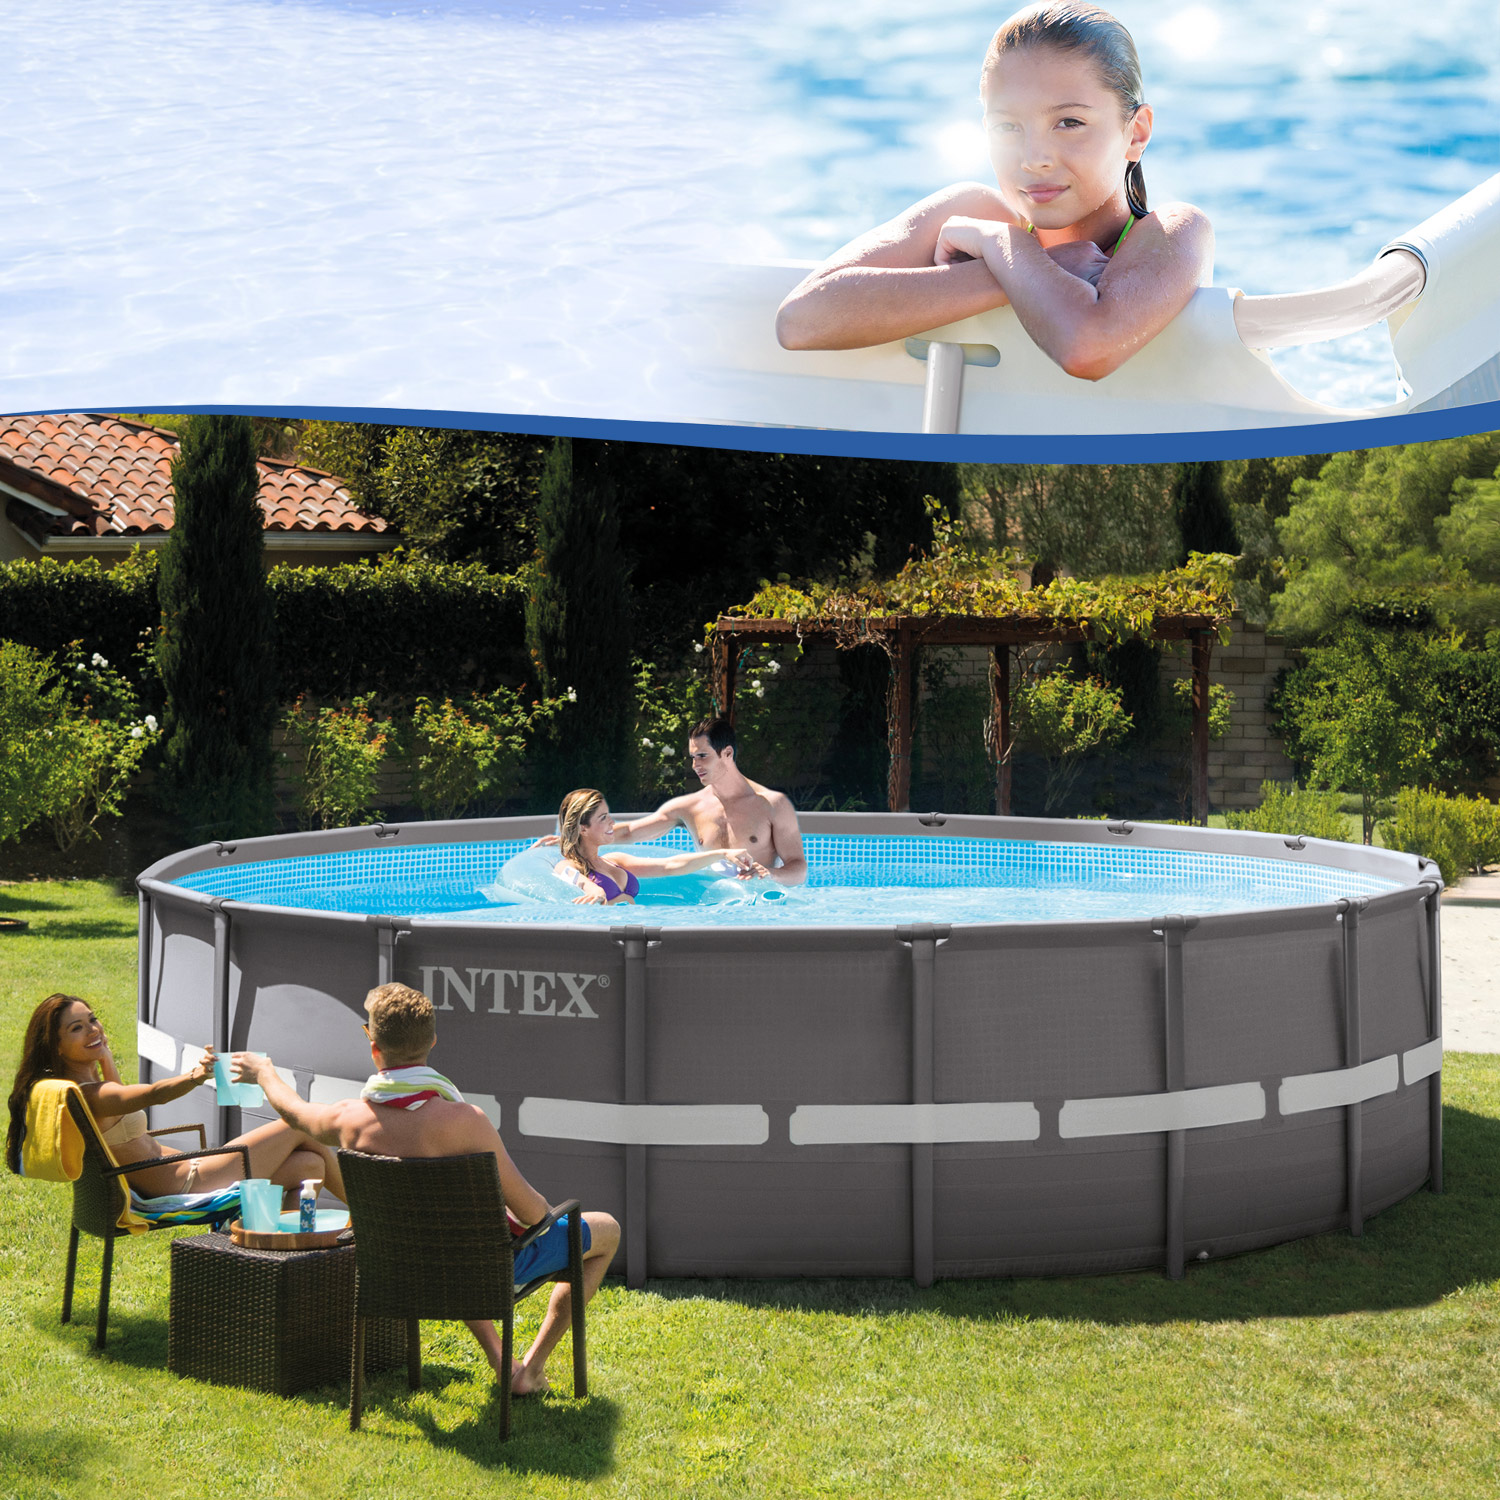 Intex Pool Ohne Filteranlage Intex 28907 Ersatzpool 488 X 122 Cm Swimming Pool Frame